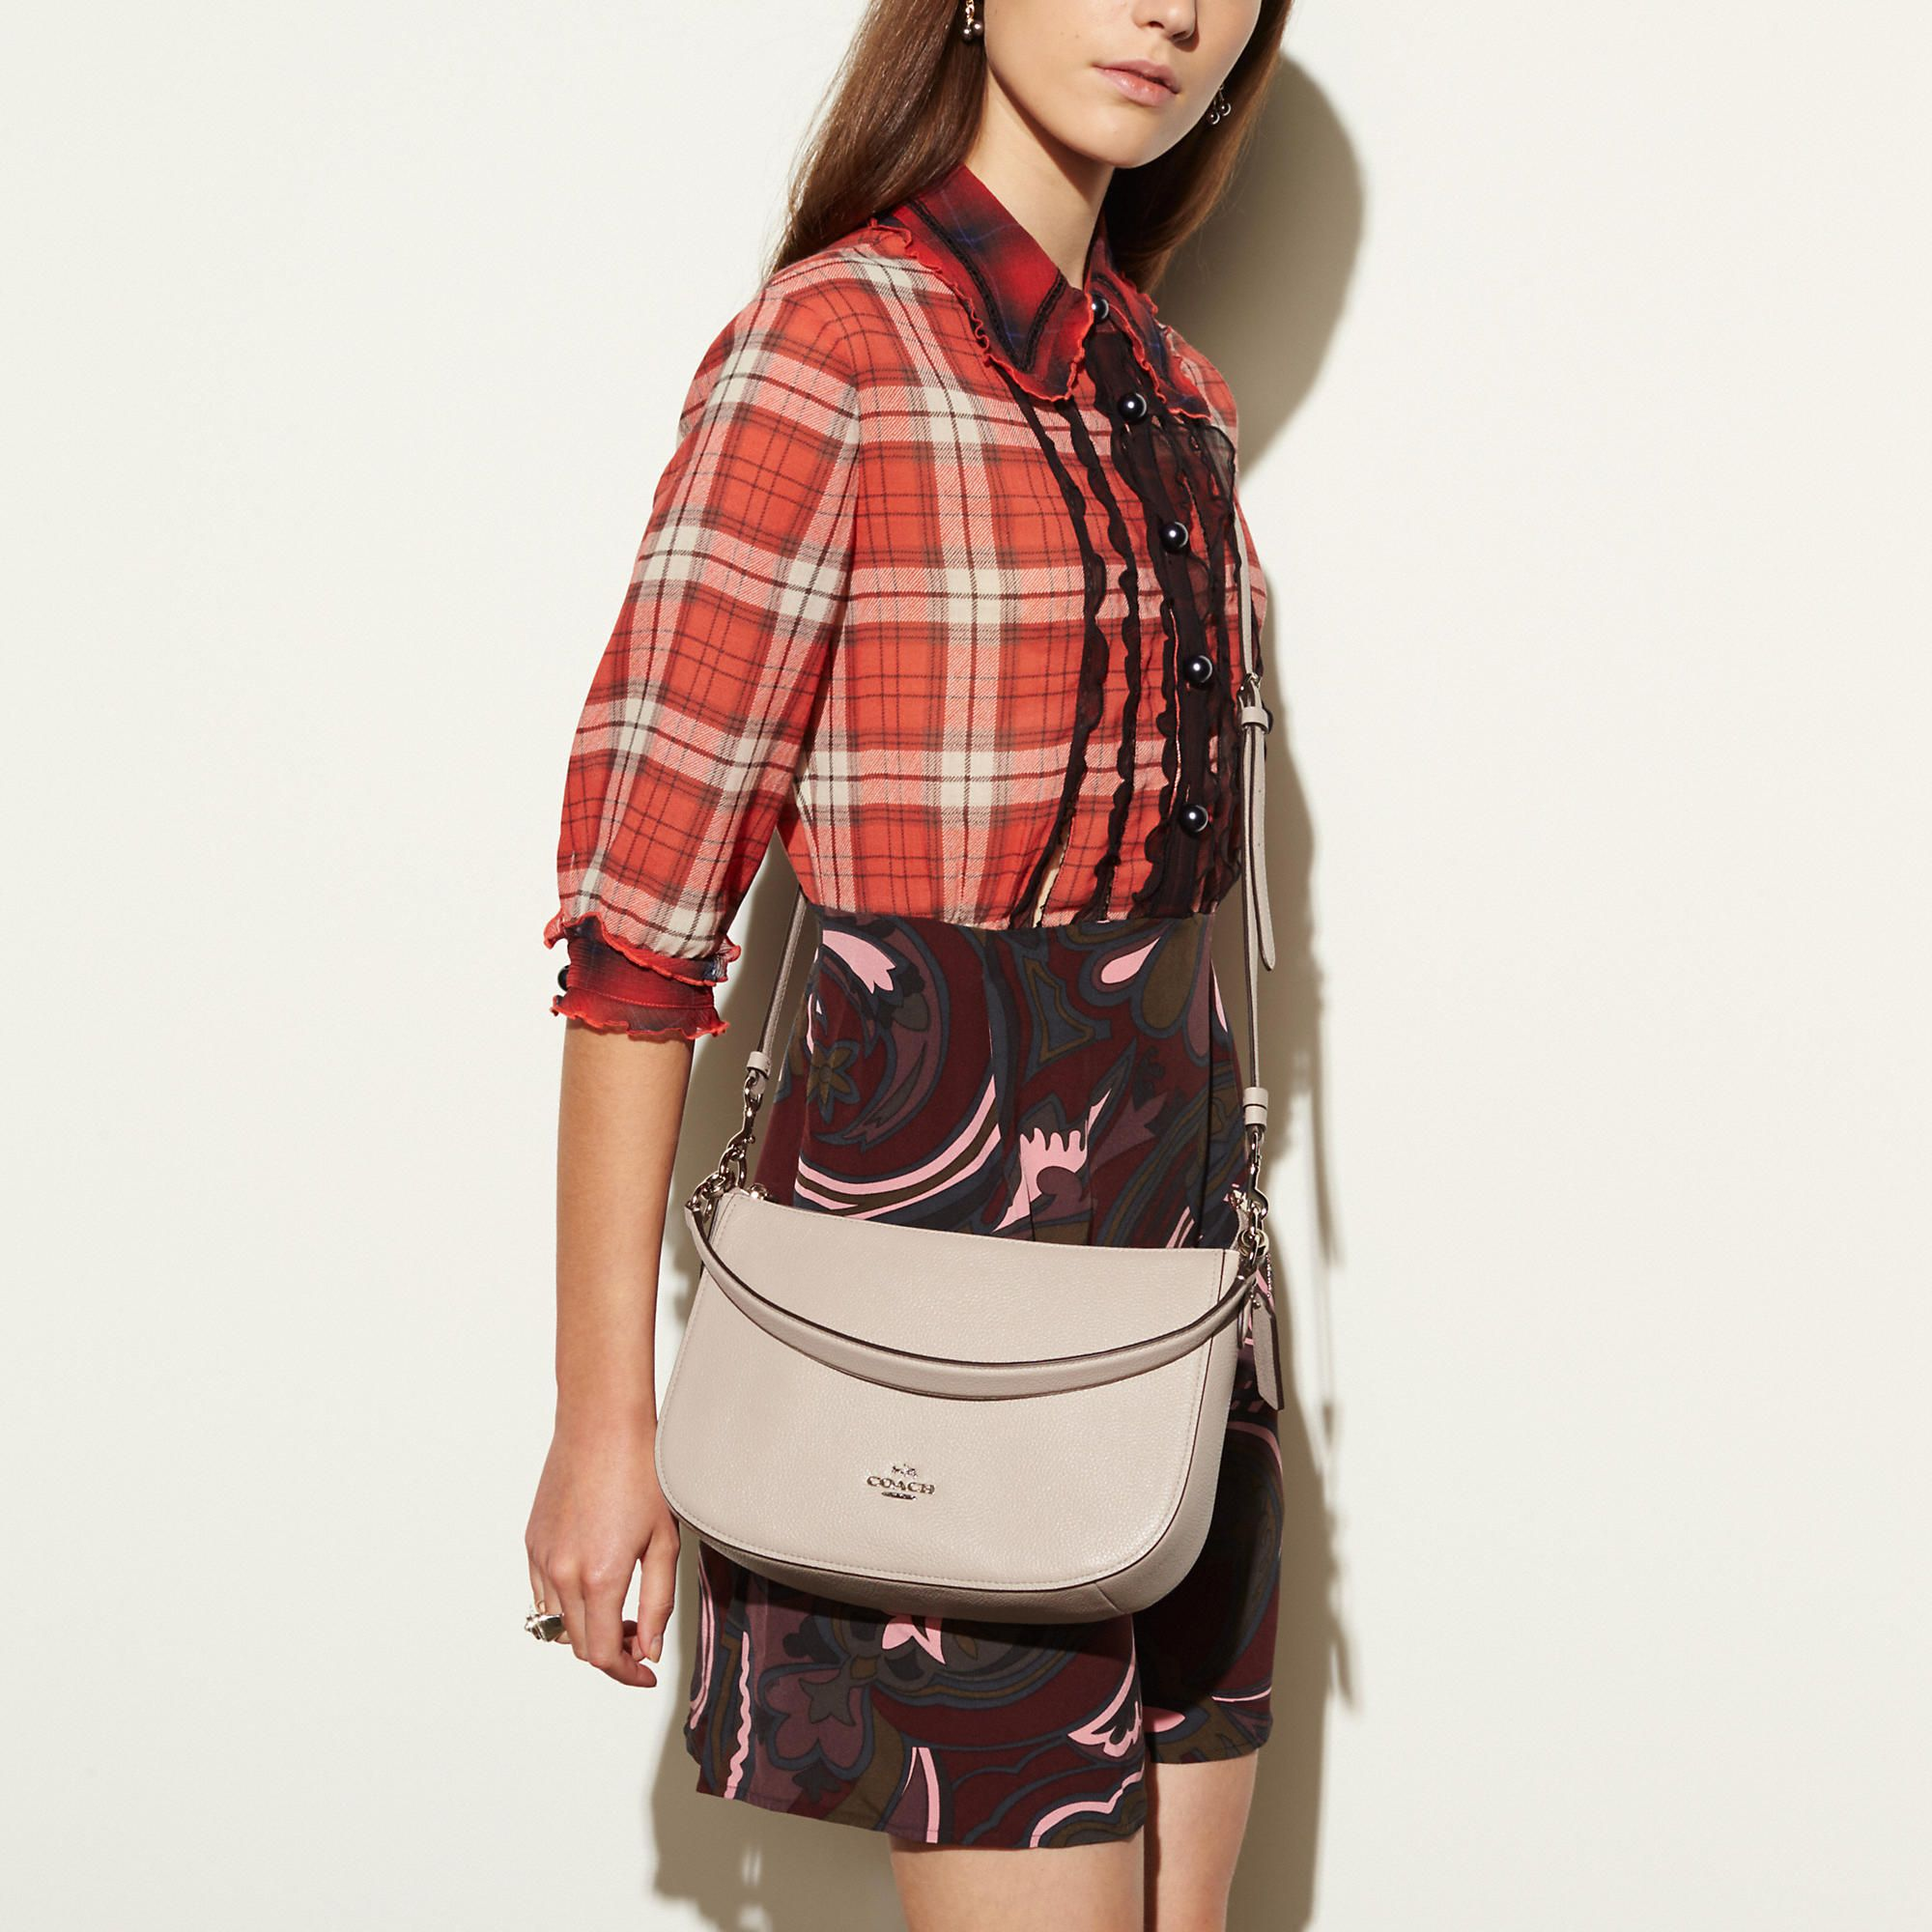 f616966d20 Shop The COACH Chelsea Crossbody In Pebble Leather. Enjoy Complimentary  Shipping   Returns! Find Designer Bags